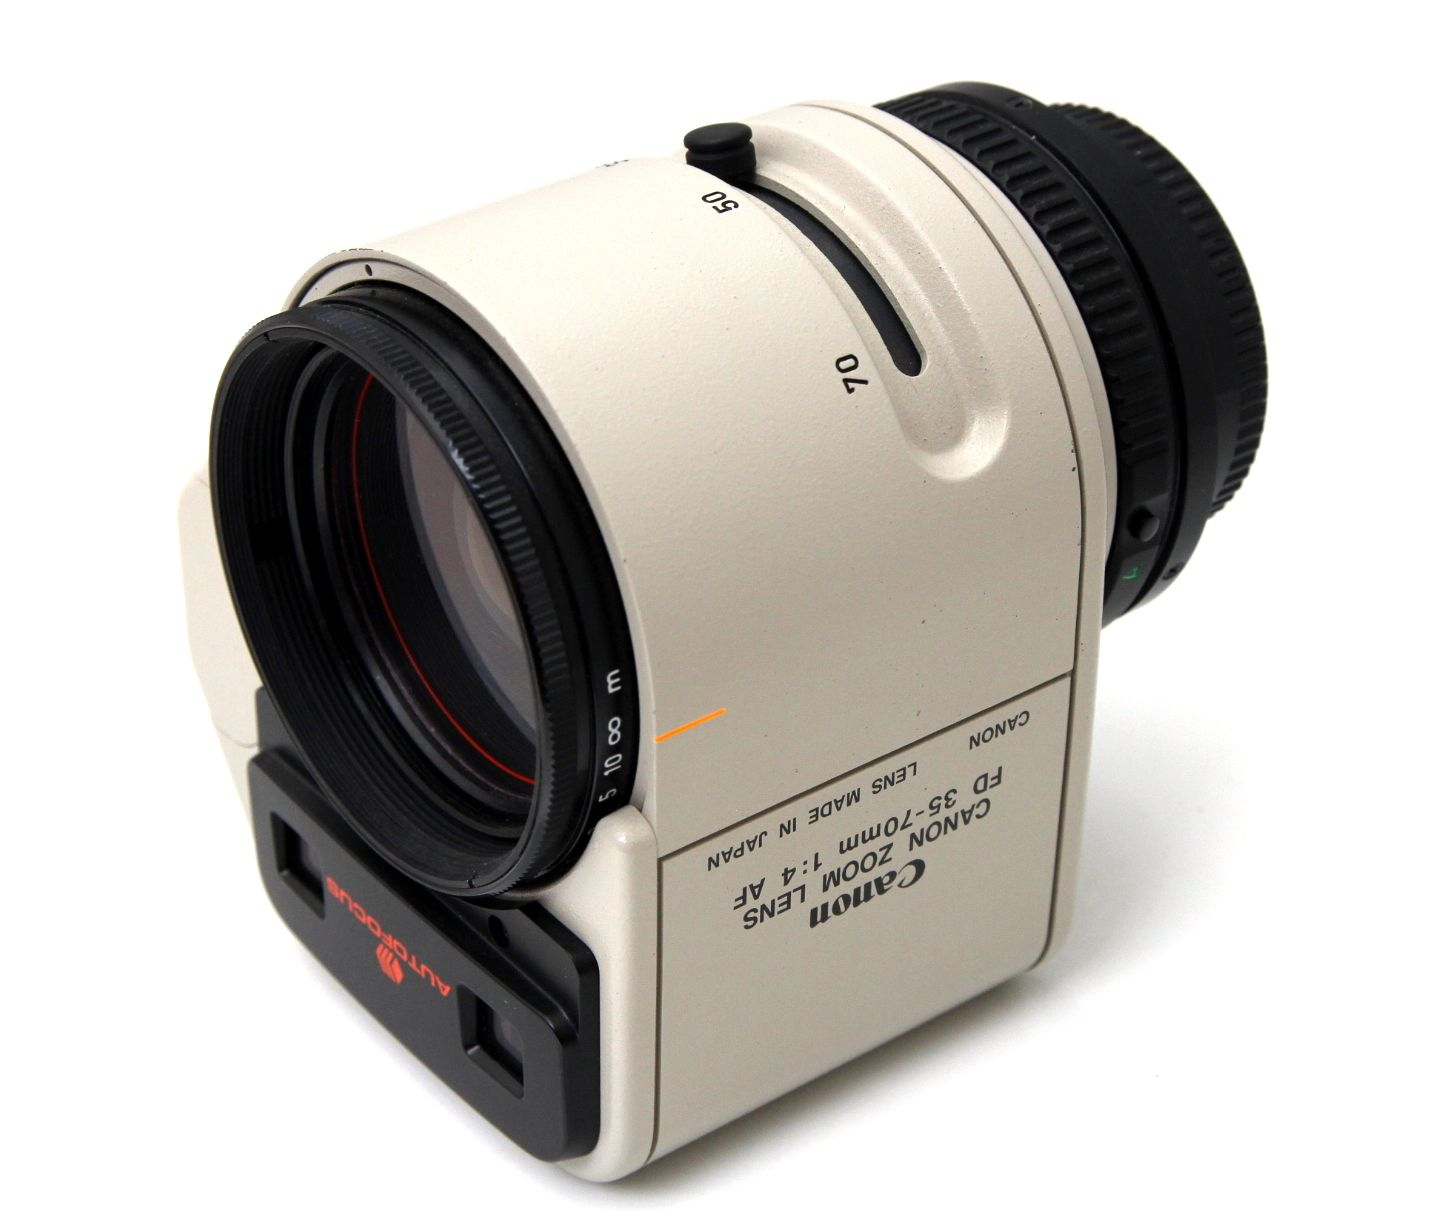 The Canon Fd F4 35 70mm Autofocusing Zoom Lens From 1981 Believed To Be The First Autofocus Zoom Introduced And Fitte Unique Collectibles Zoom Lens Autofocus